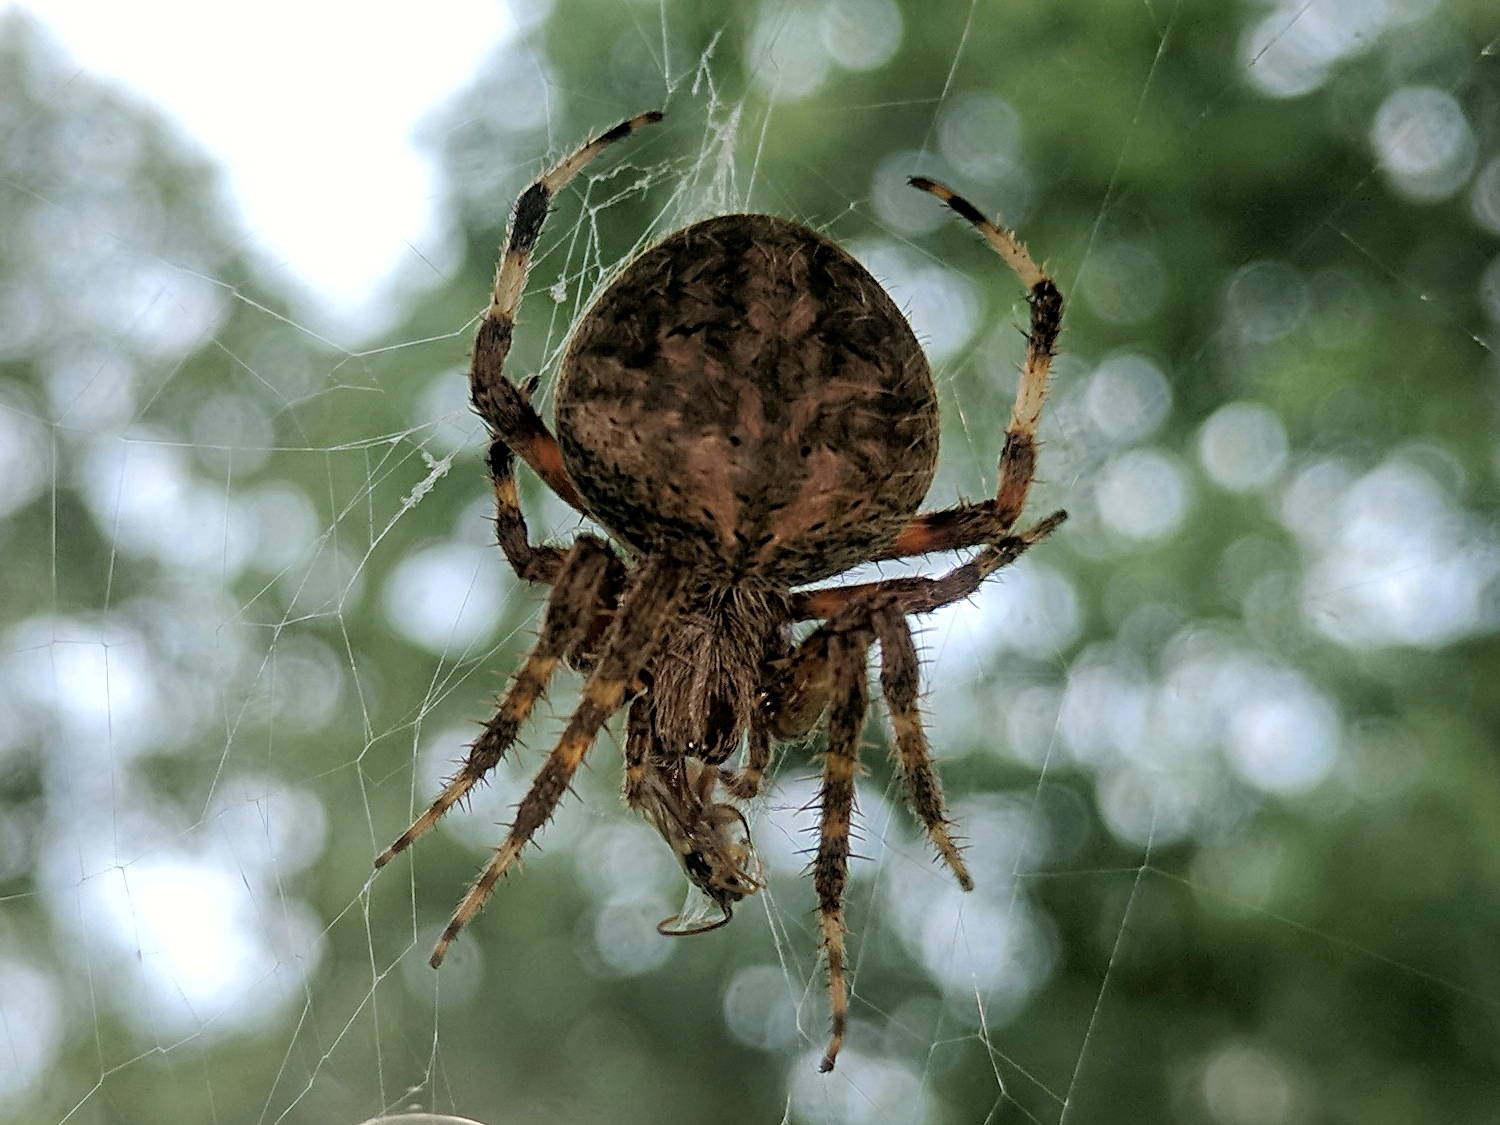 Monthly Image Orb Weaving Spider The Smell Of Molten